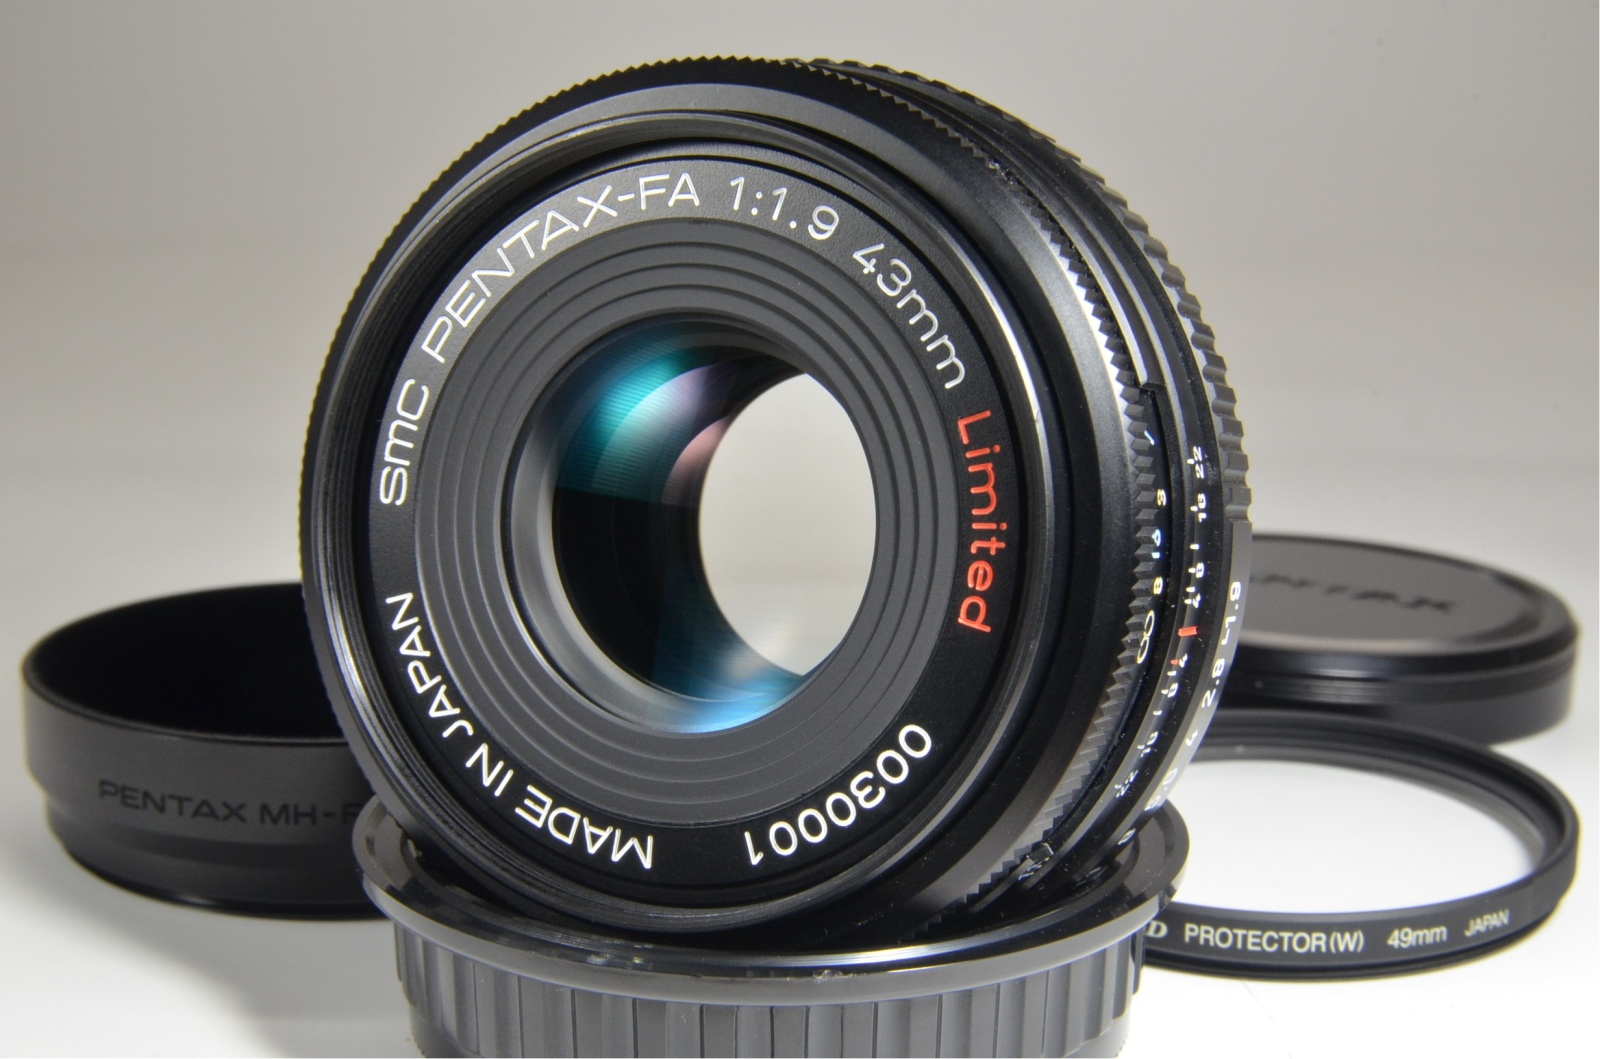 pentax smc fa 43mm f1.9 black limited lens made in japan